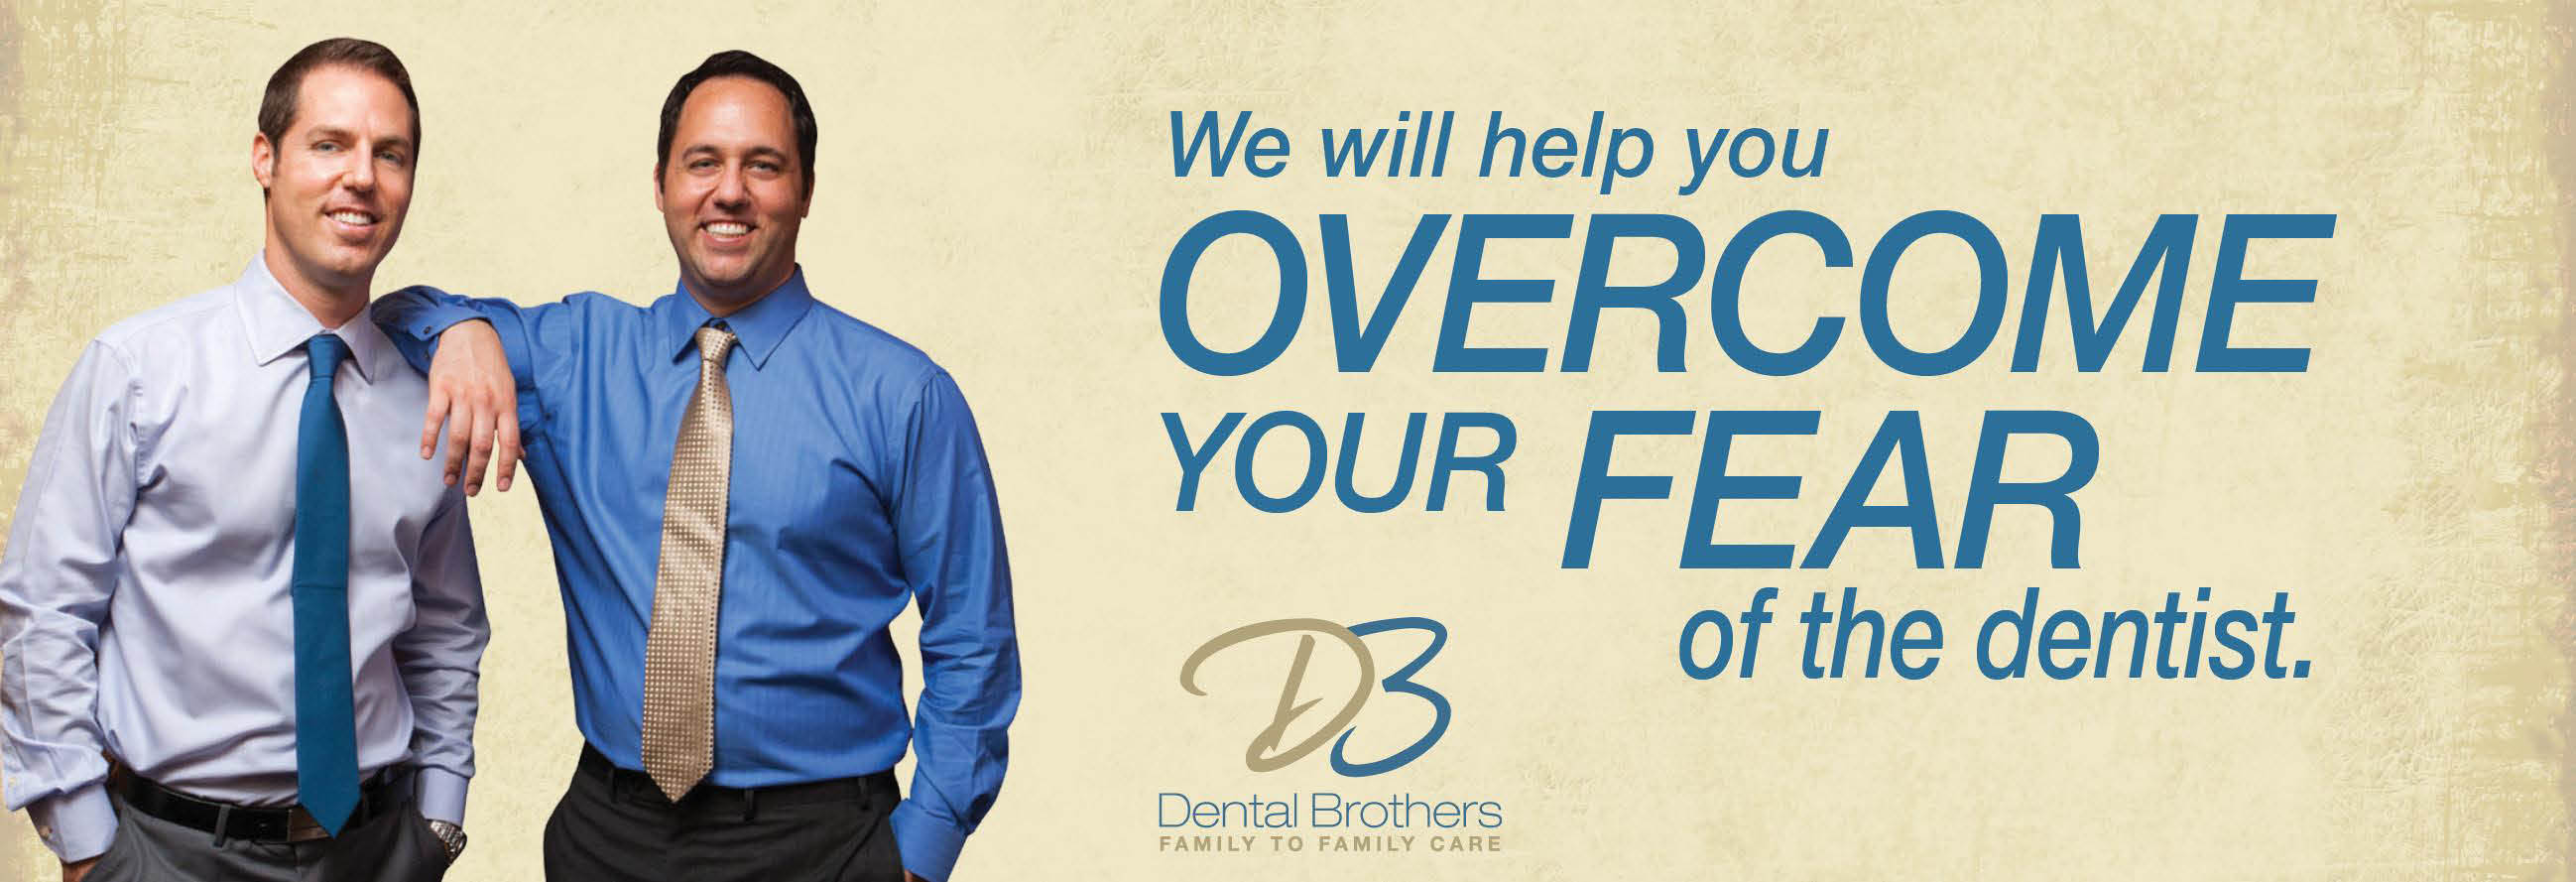 Dentist near me, Dental Office in Mesa, AZ Dentist Coupons, Teeth whitening, extractions